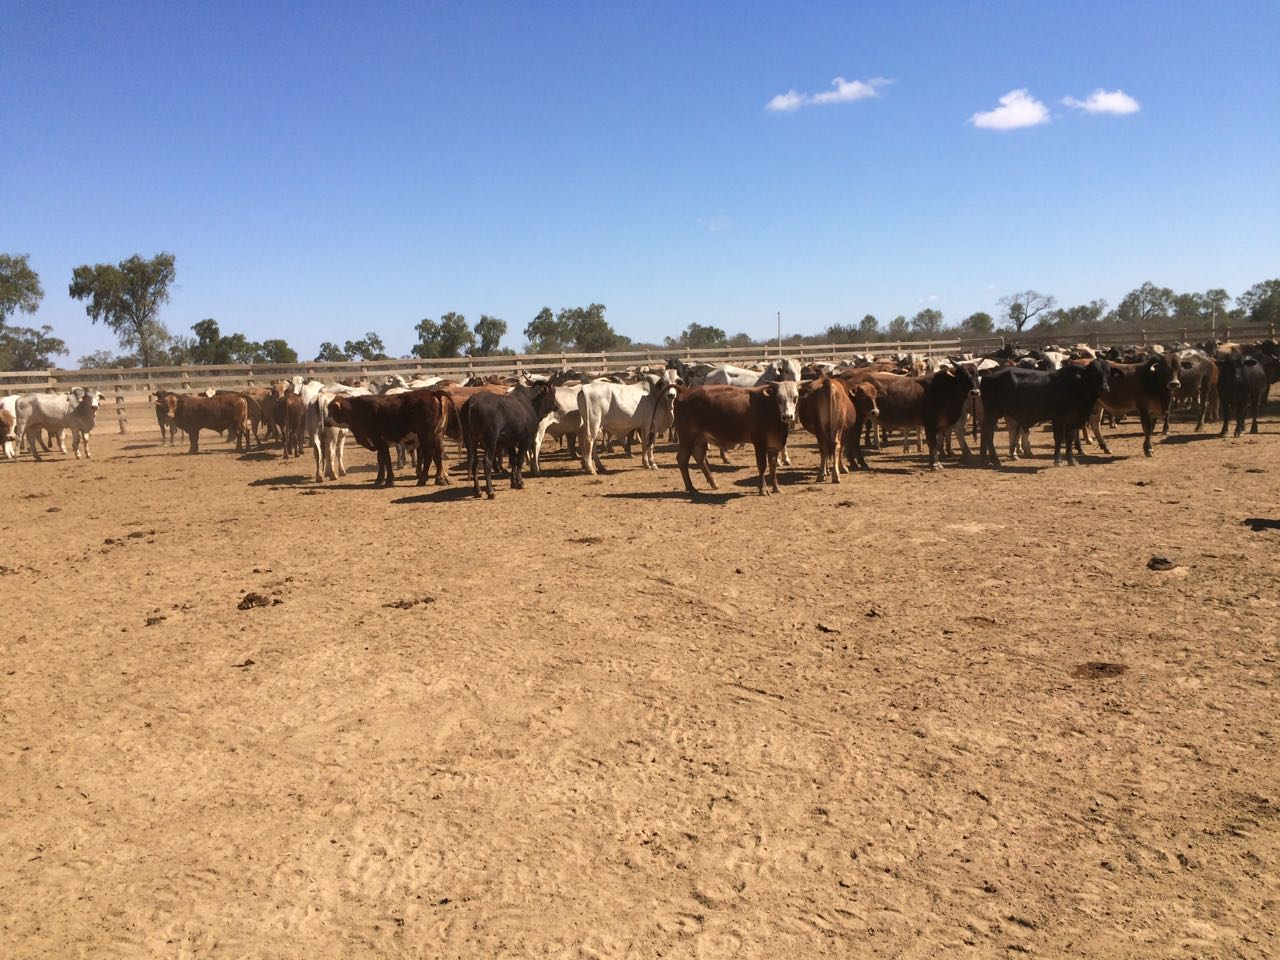 Paraguay cattle raising opportunity - cattle in field 1